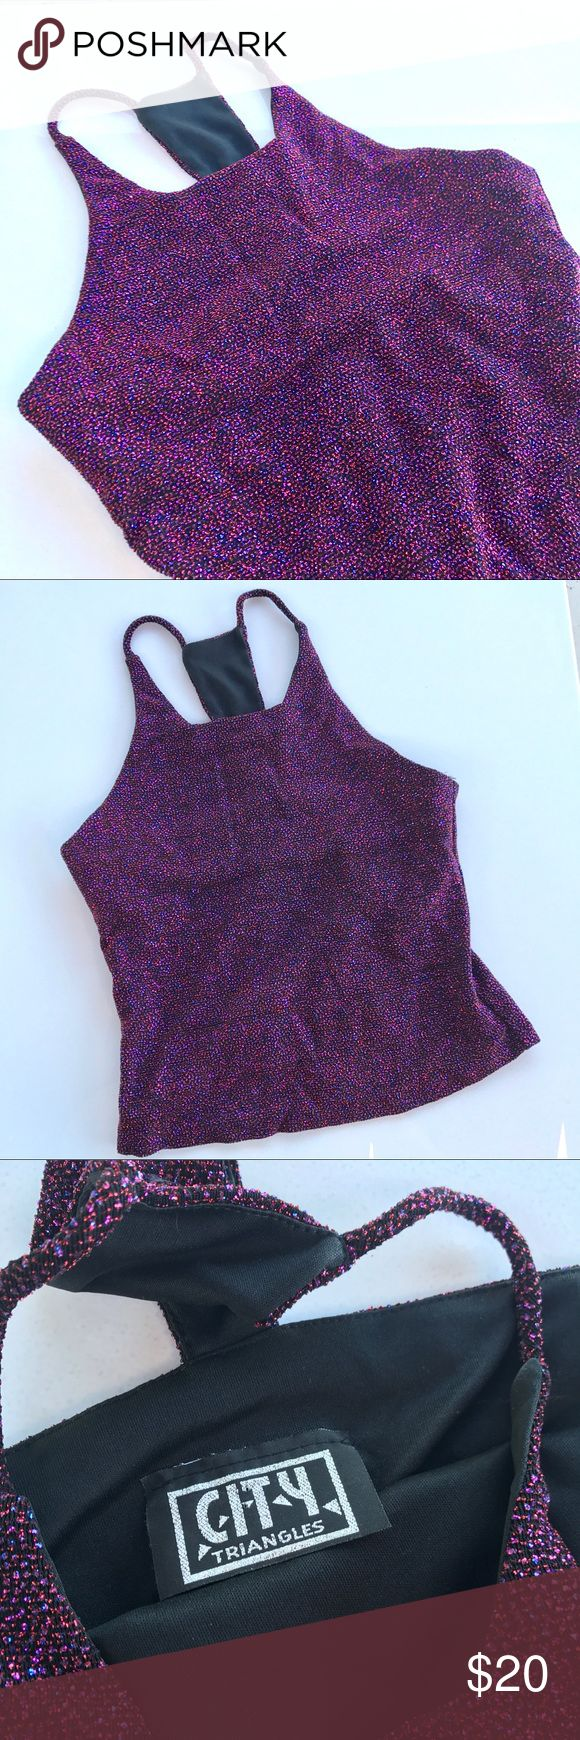 🖤 Vintage Super Sparkly Crop Top 🖤 Vintage Super Sparkly Glittery Crop Top in excellent condition!! Has a super cute unique neck line. Size Tag is removed but would be a good fit for a size small. Tops Crop Tops